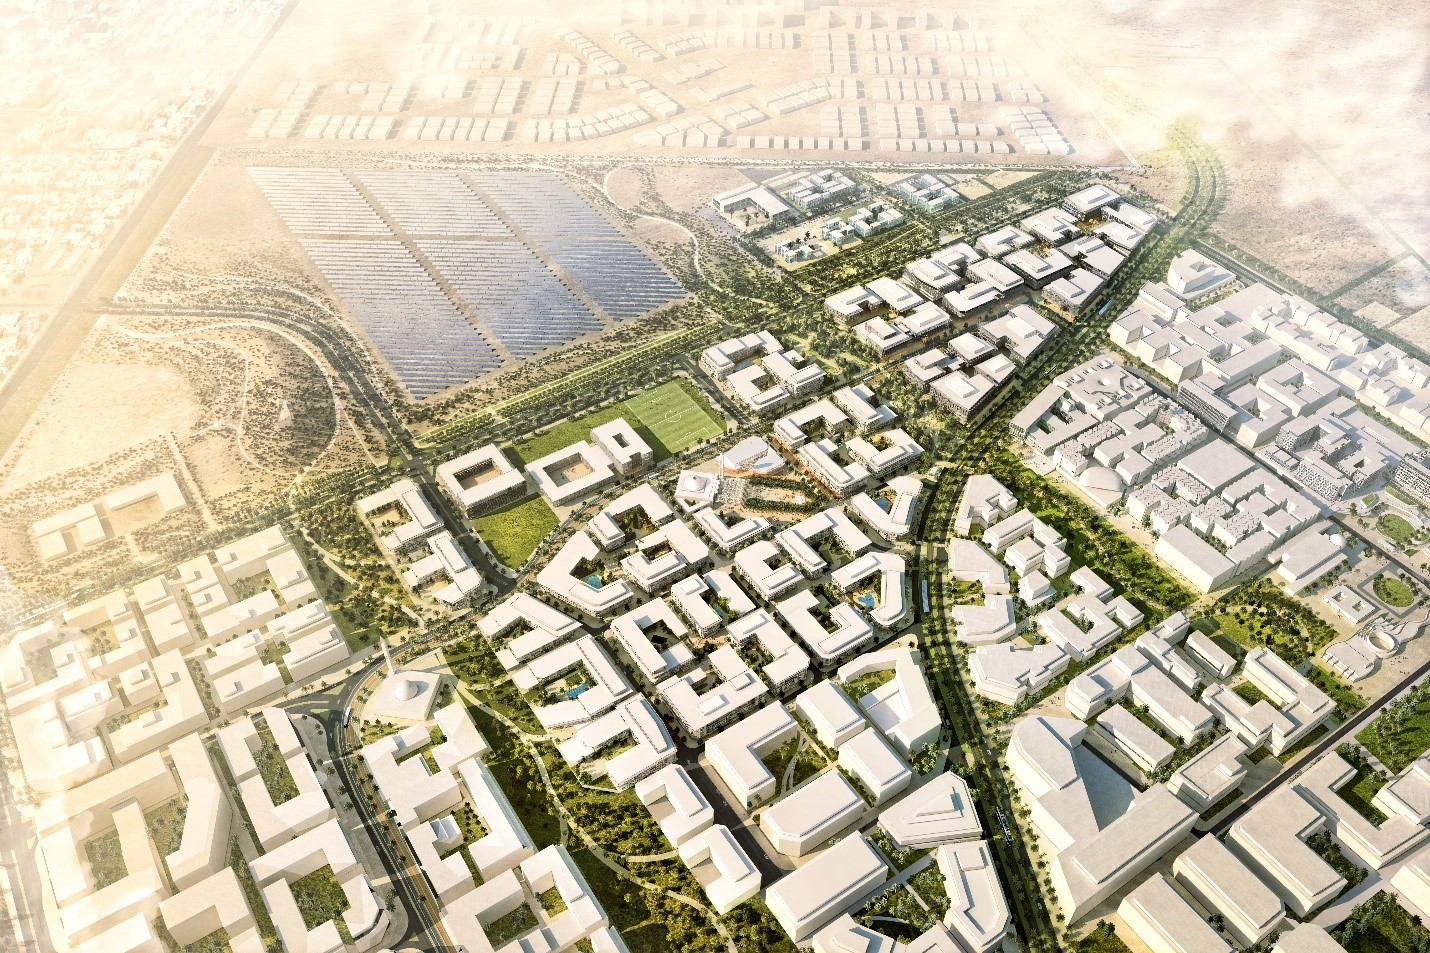 Masdar City Launches Phase 2 Master Plan Green Building Elements 2019